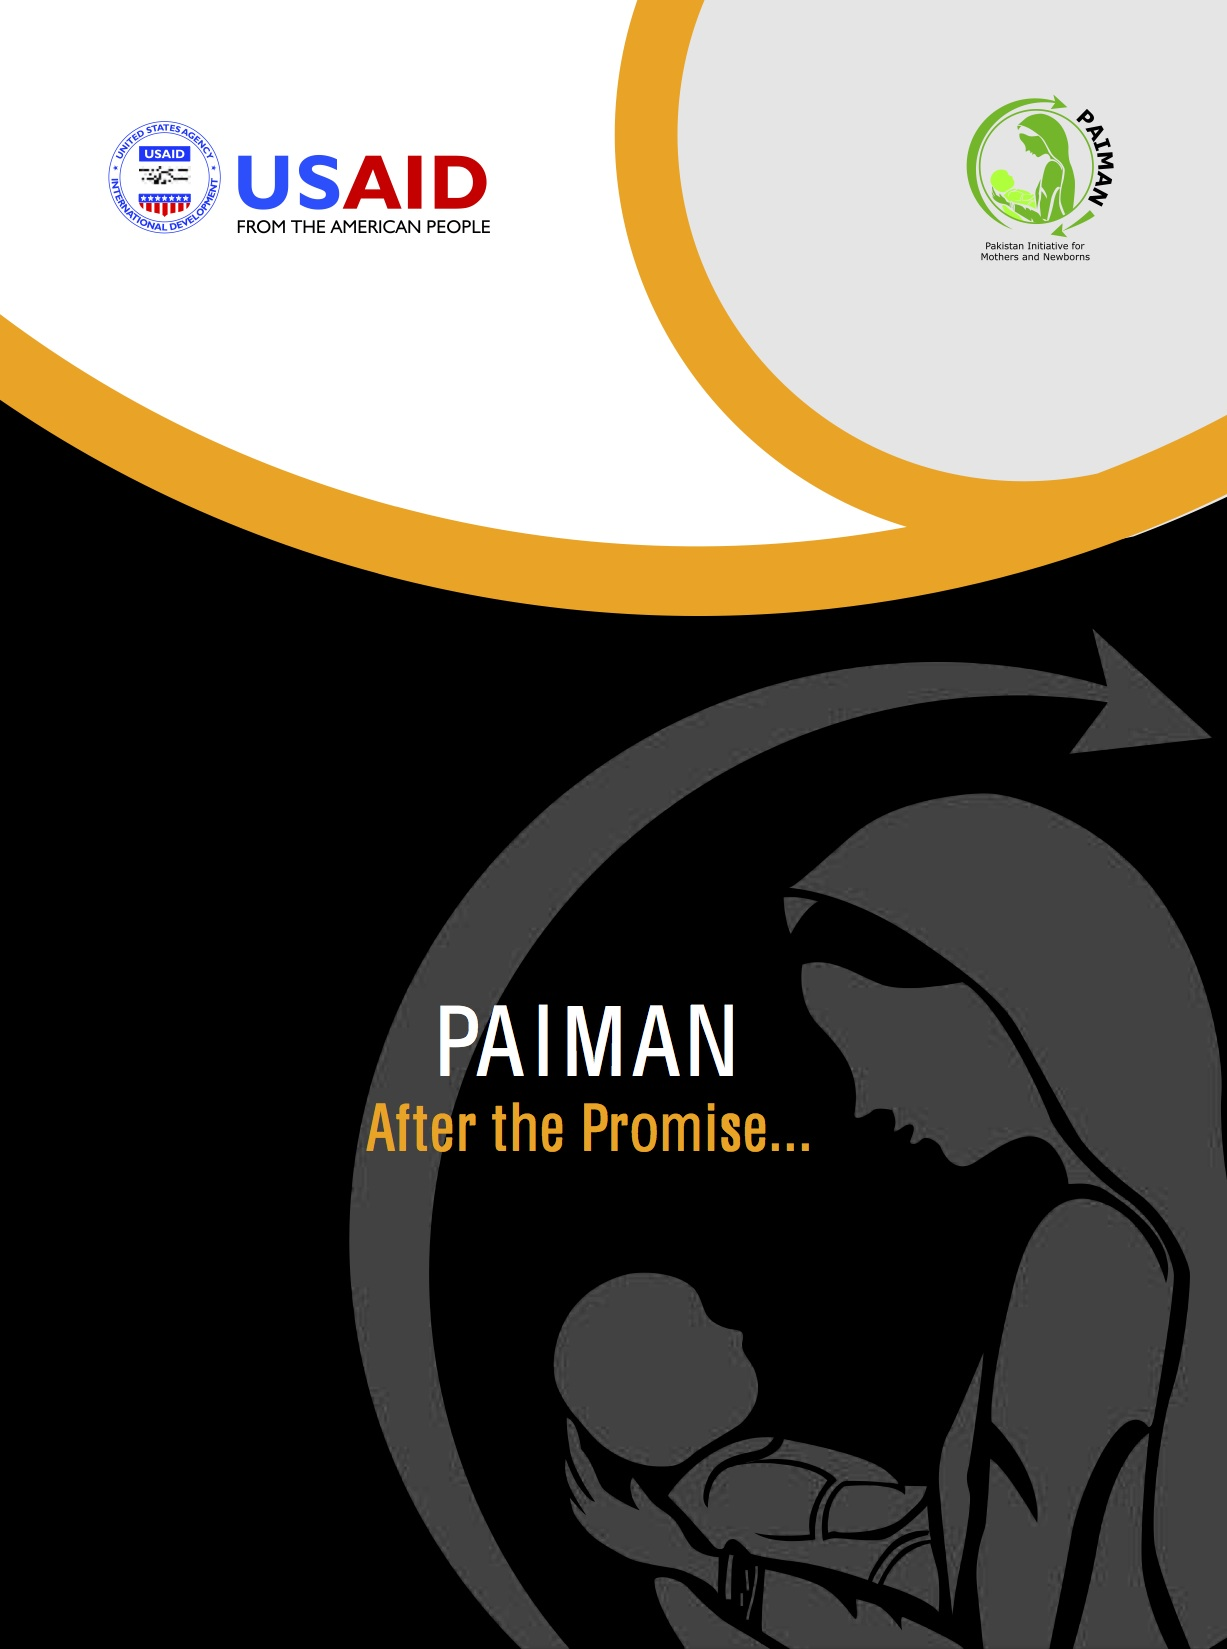 Advocacy Kit PAIMAN - After the Promise - 2009